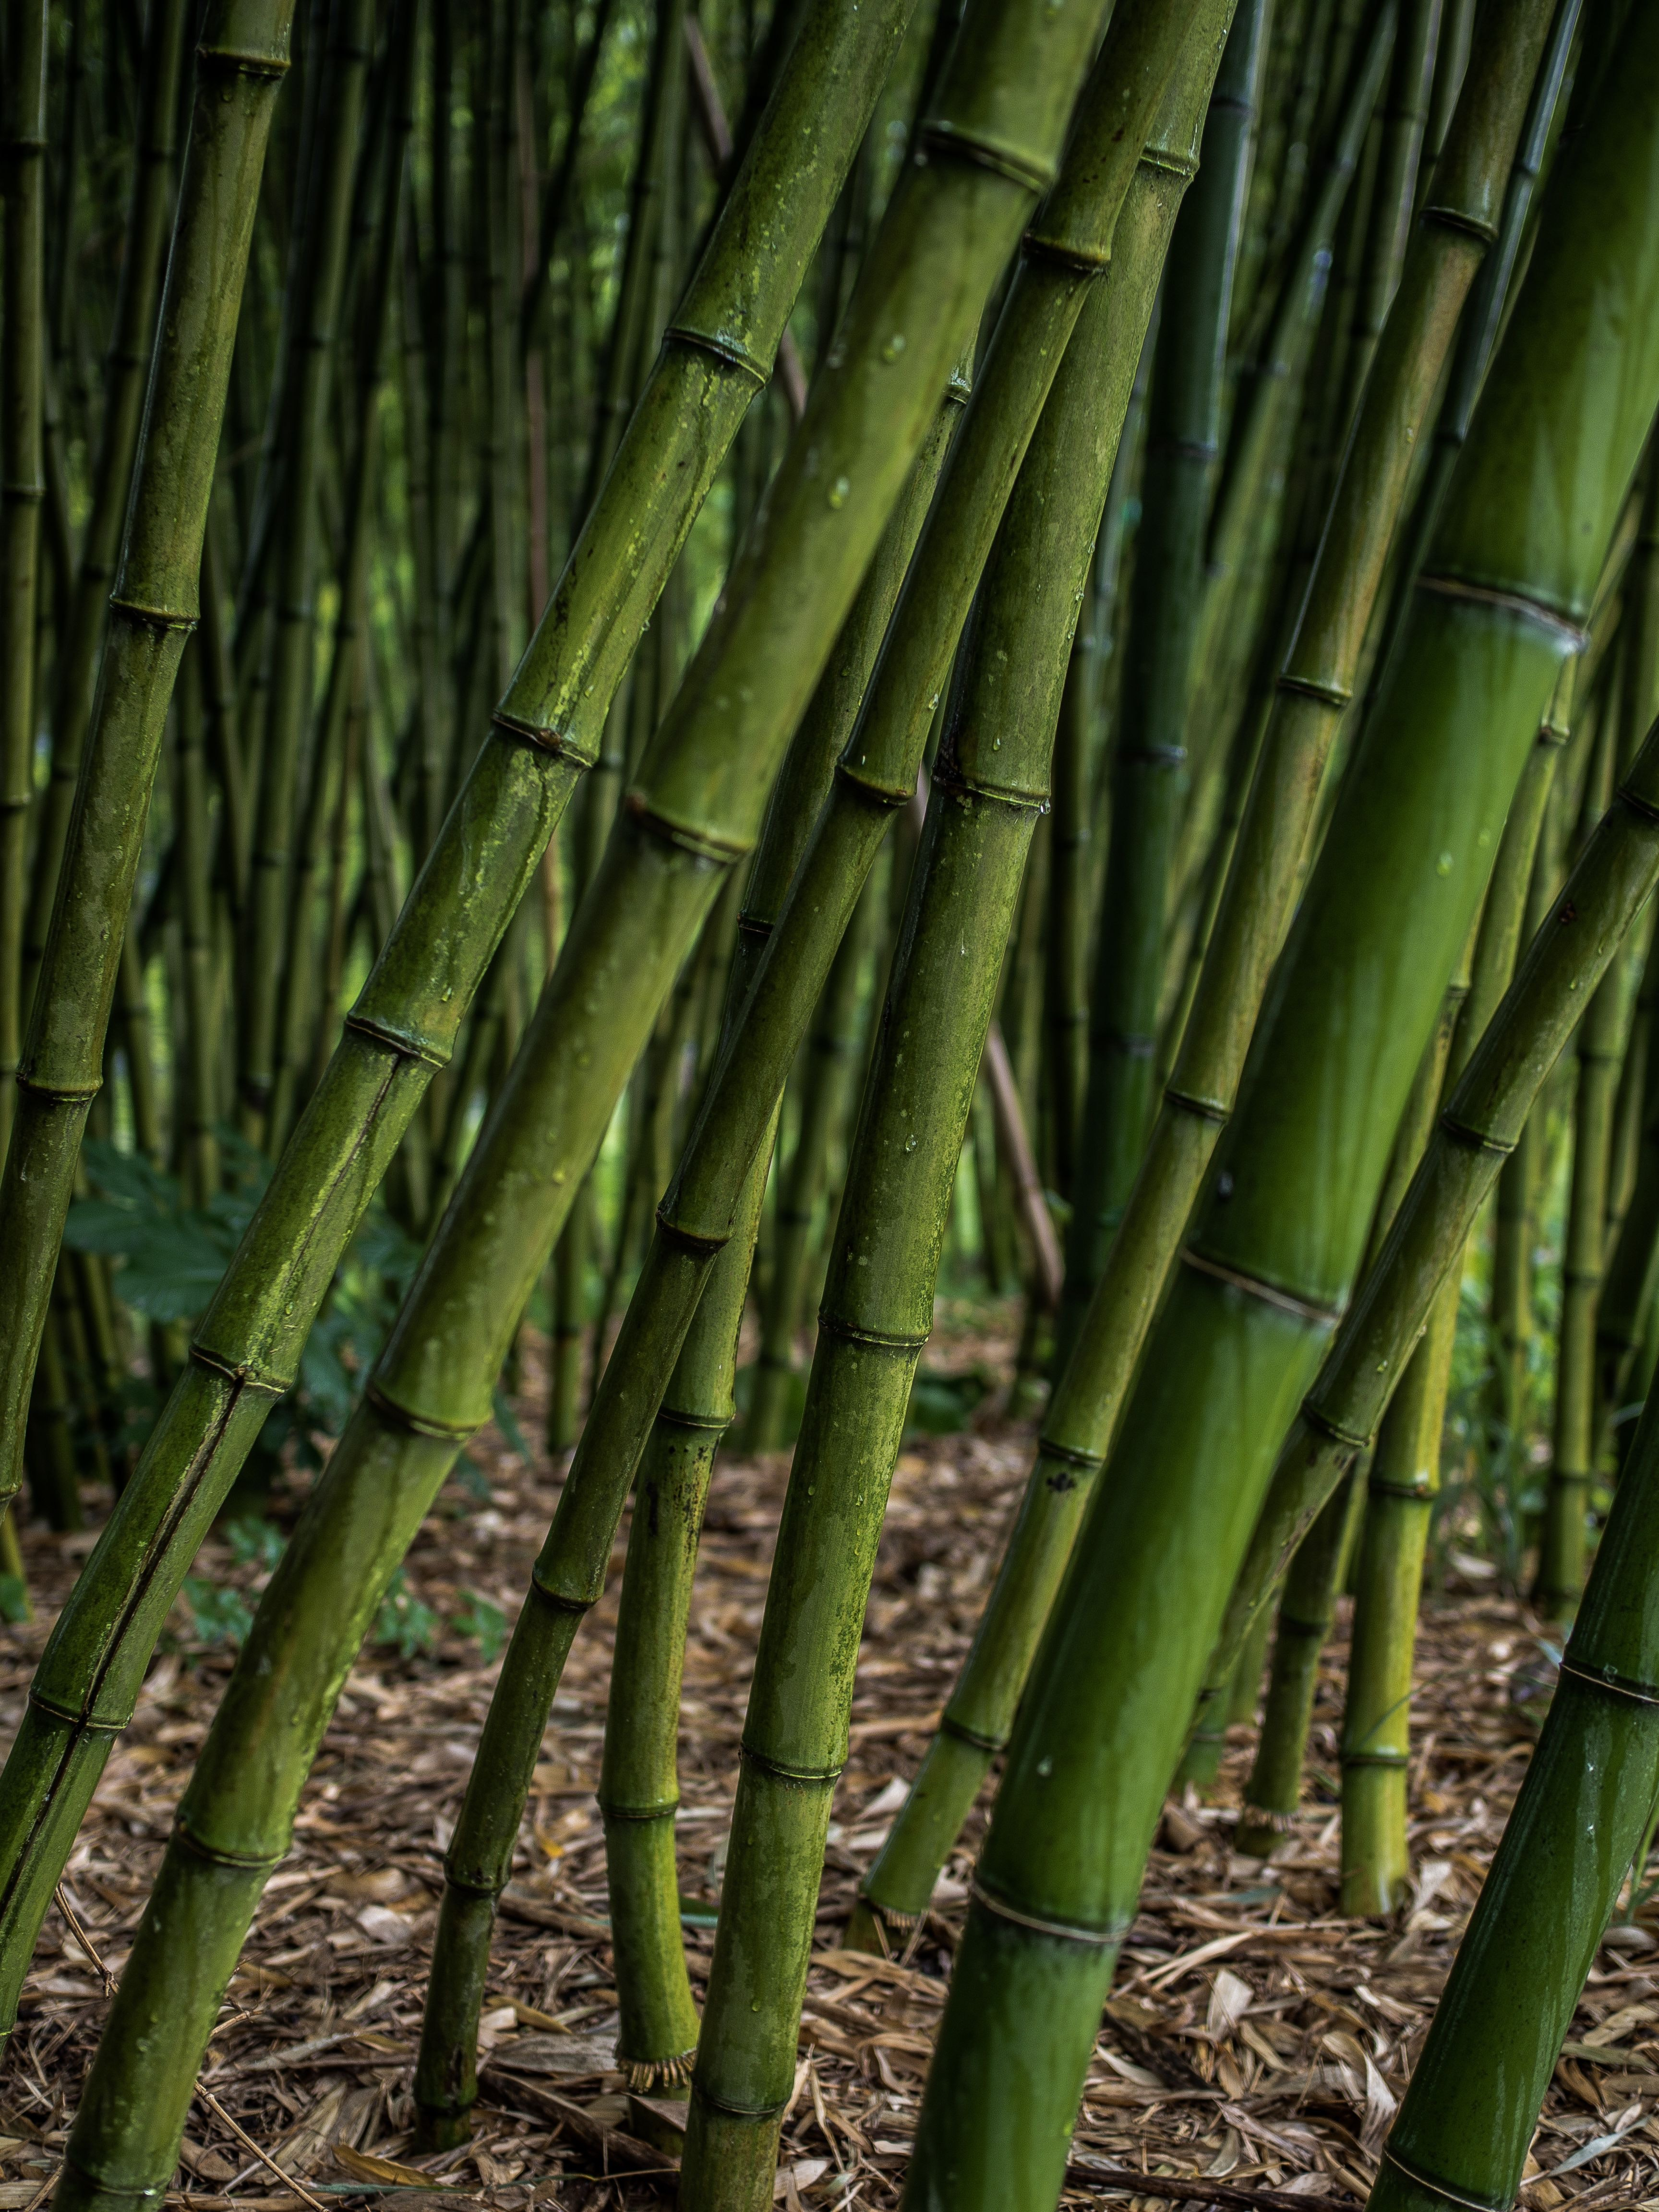 96206 download wallpaper Nature, Bamboo, Grove, Plants screensavers and pictures for free